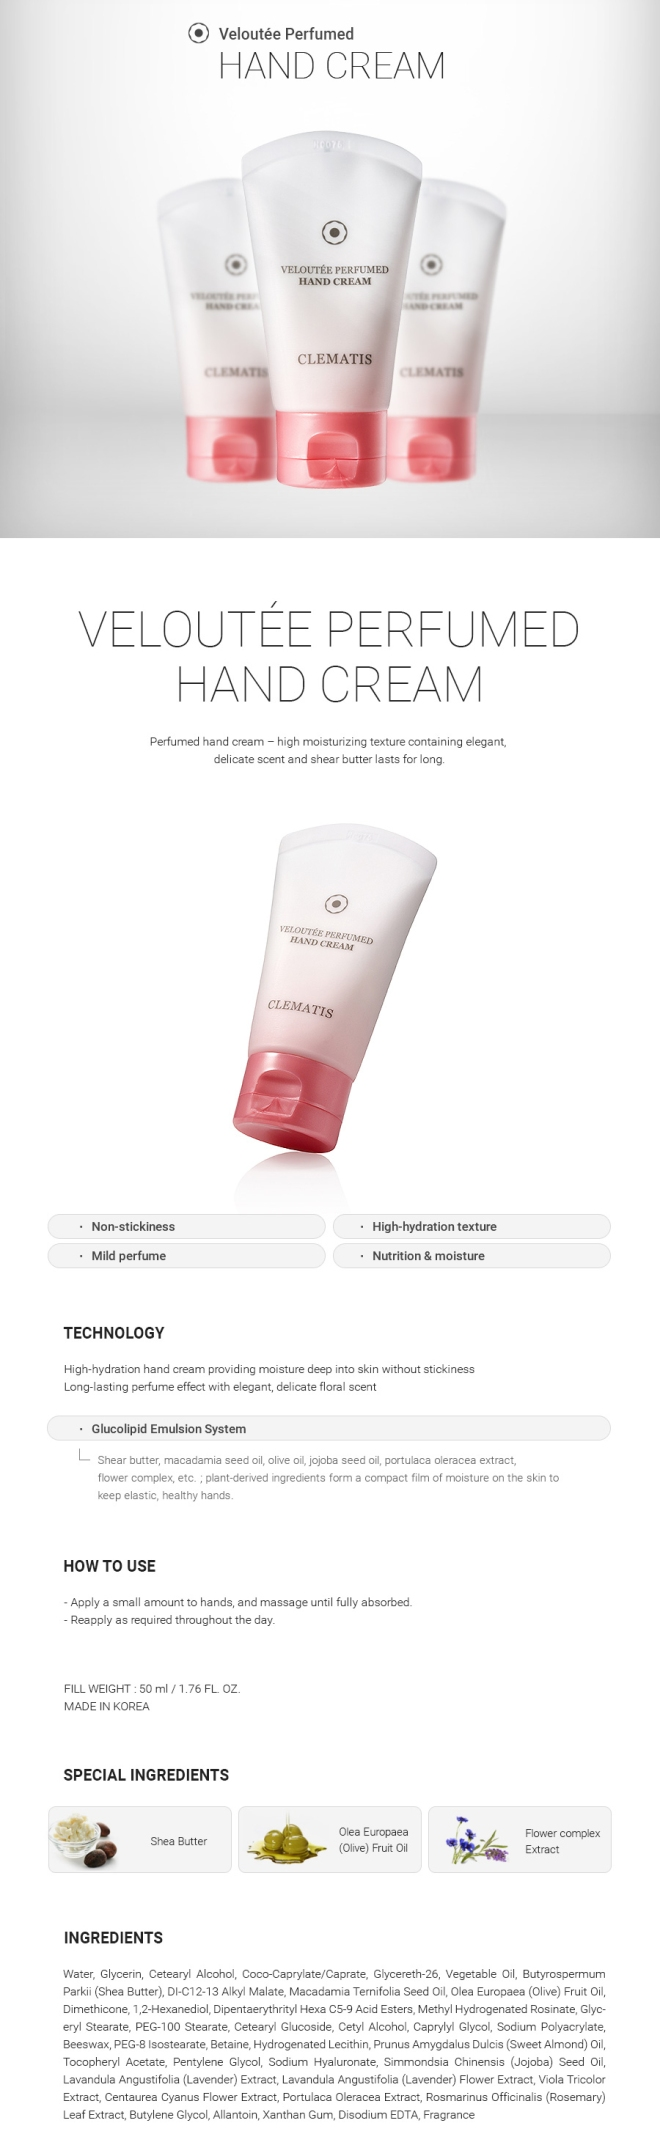 Veloutee Perfumed Hand Cream - 02